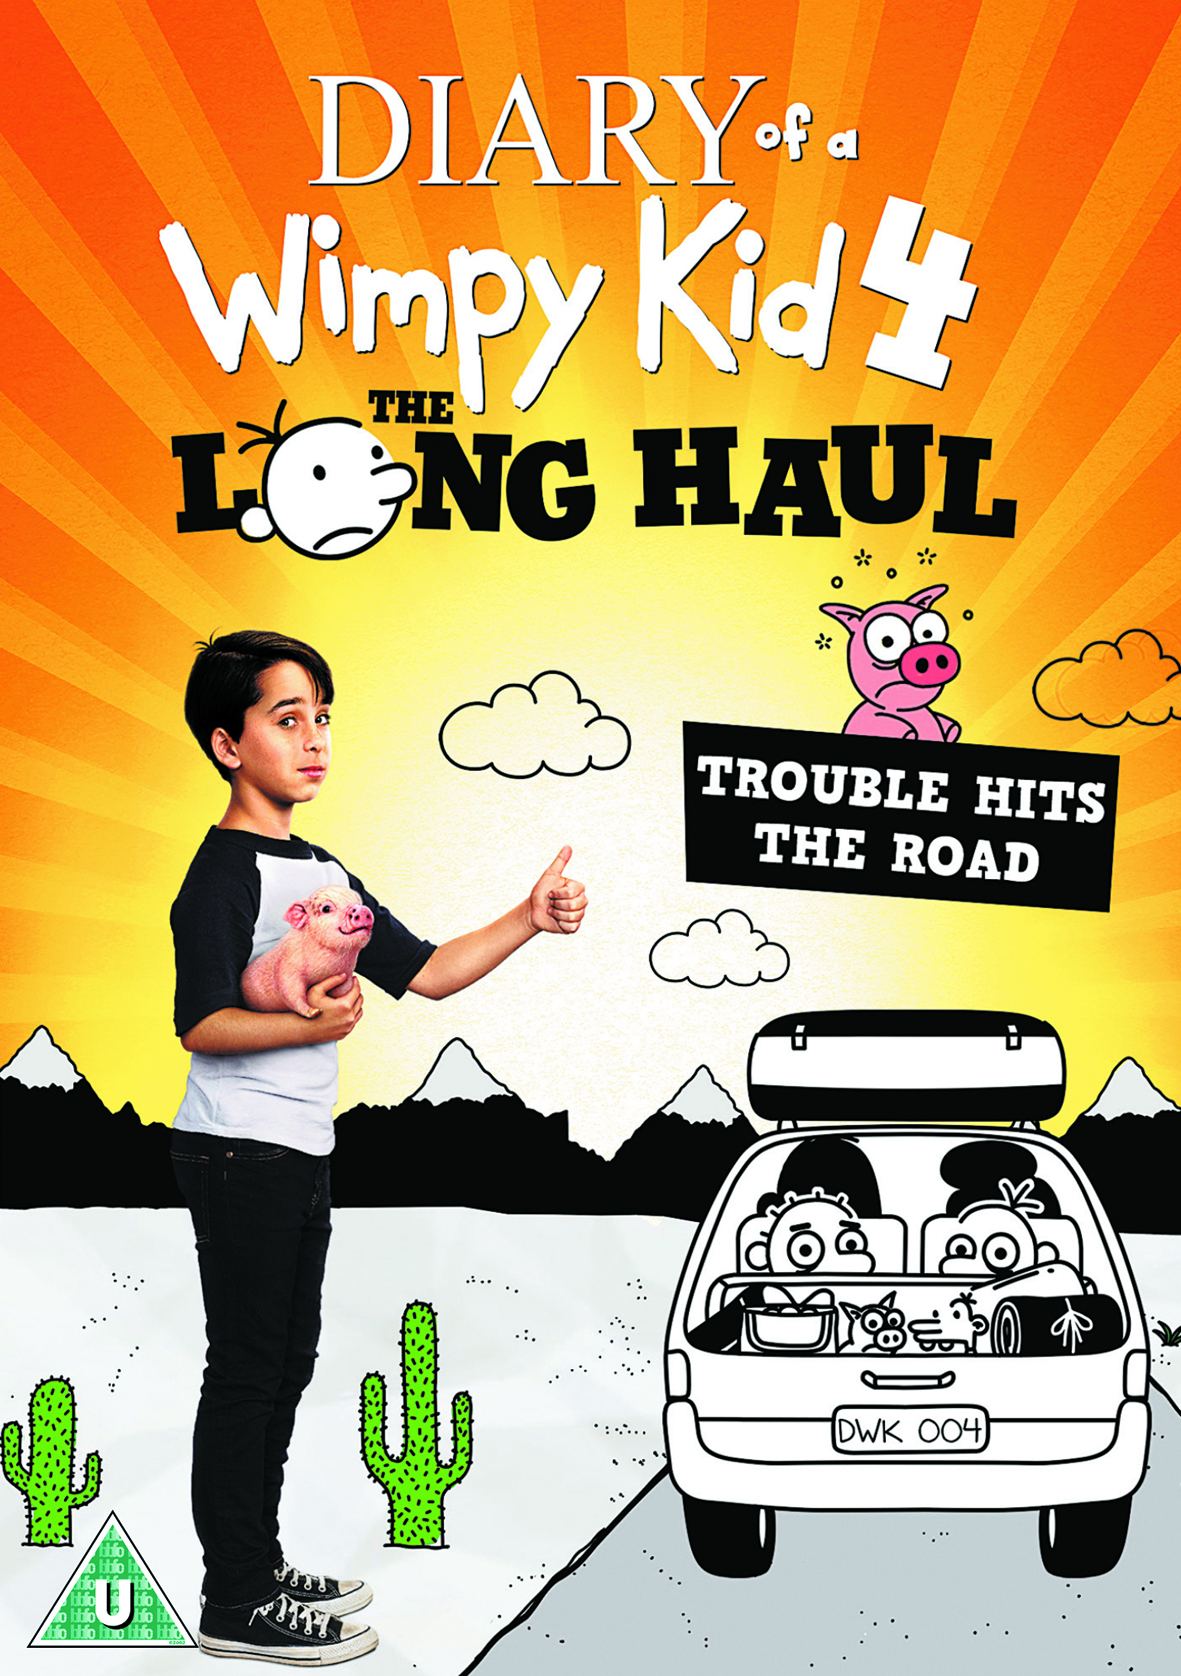 WIN DIARY OF A WIMPY KID: THE LONG HAUL ON DVD!